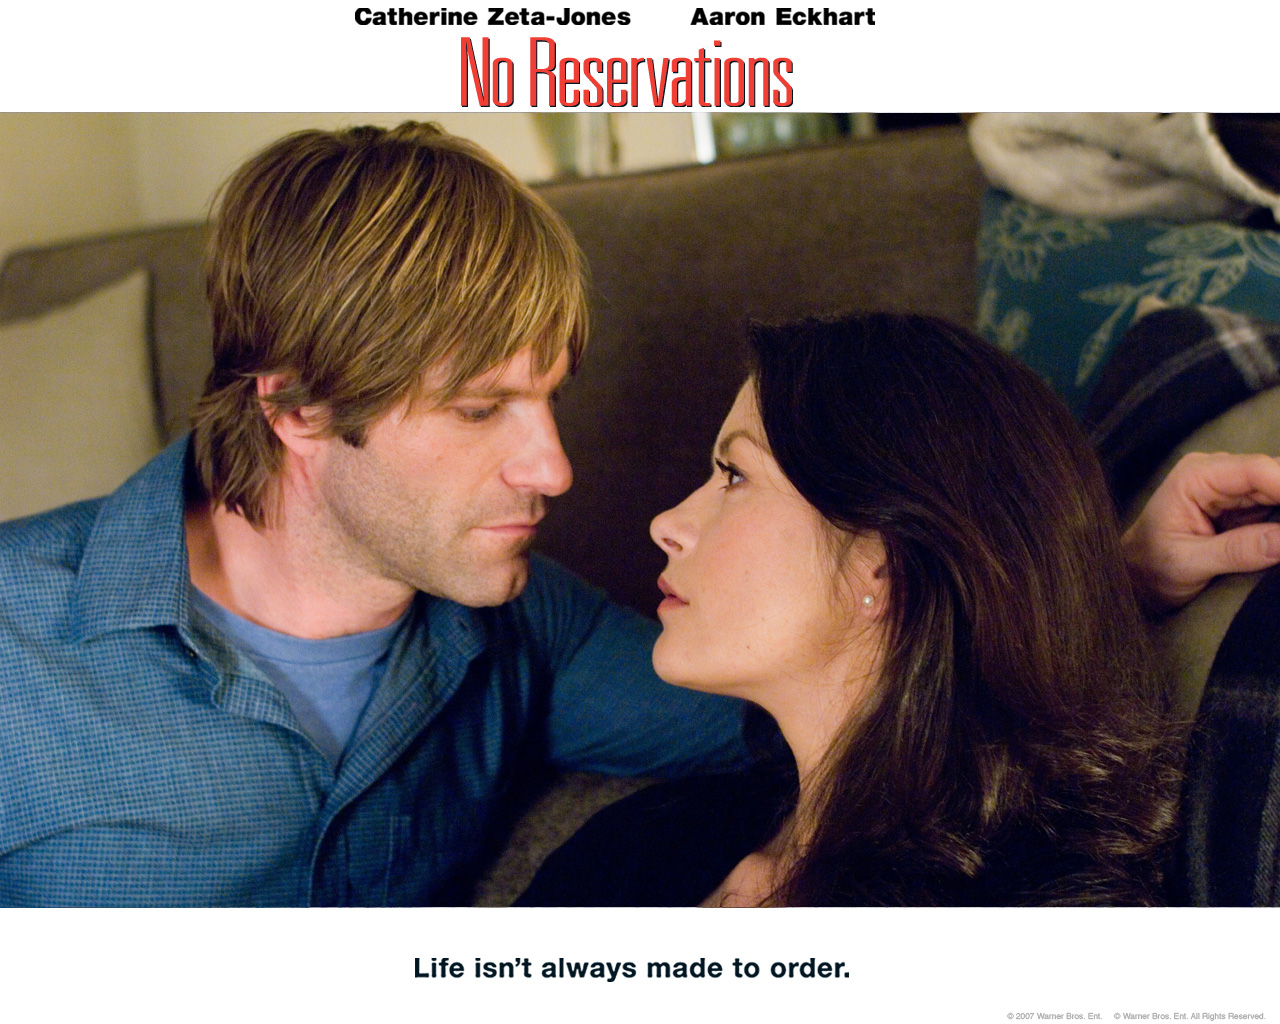 Aaron Eckhart's quote #4